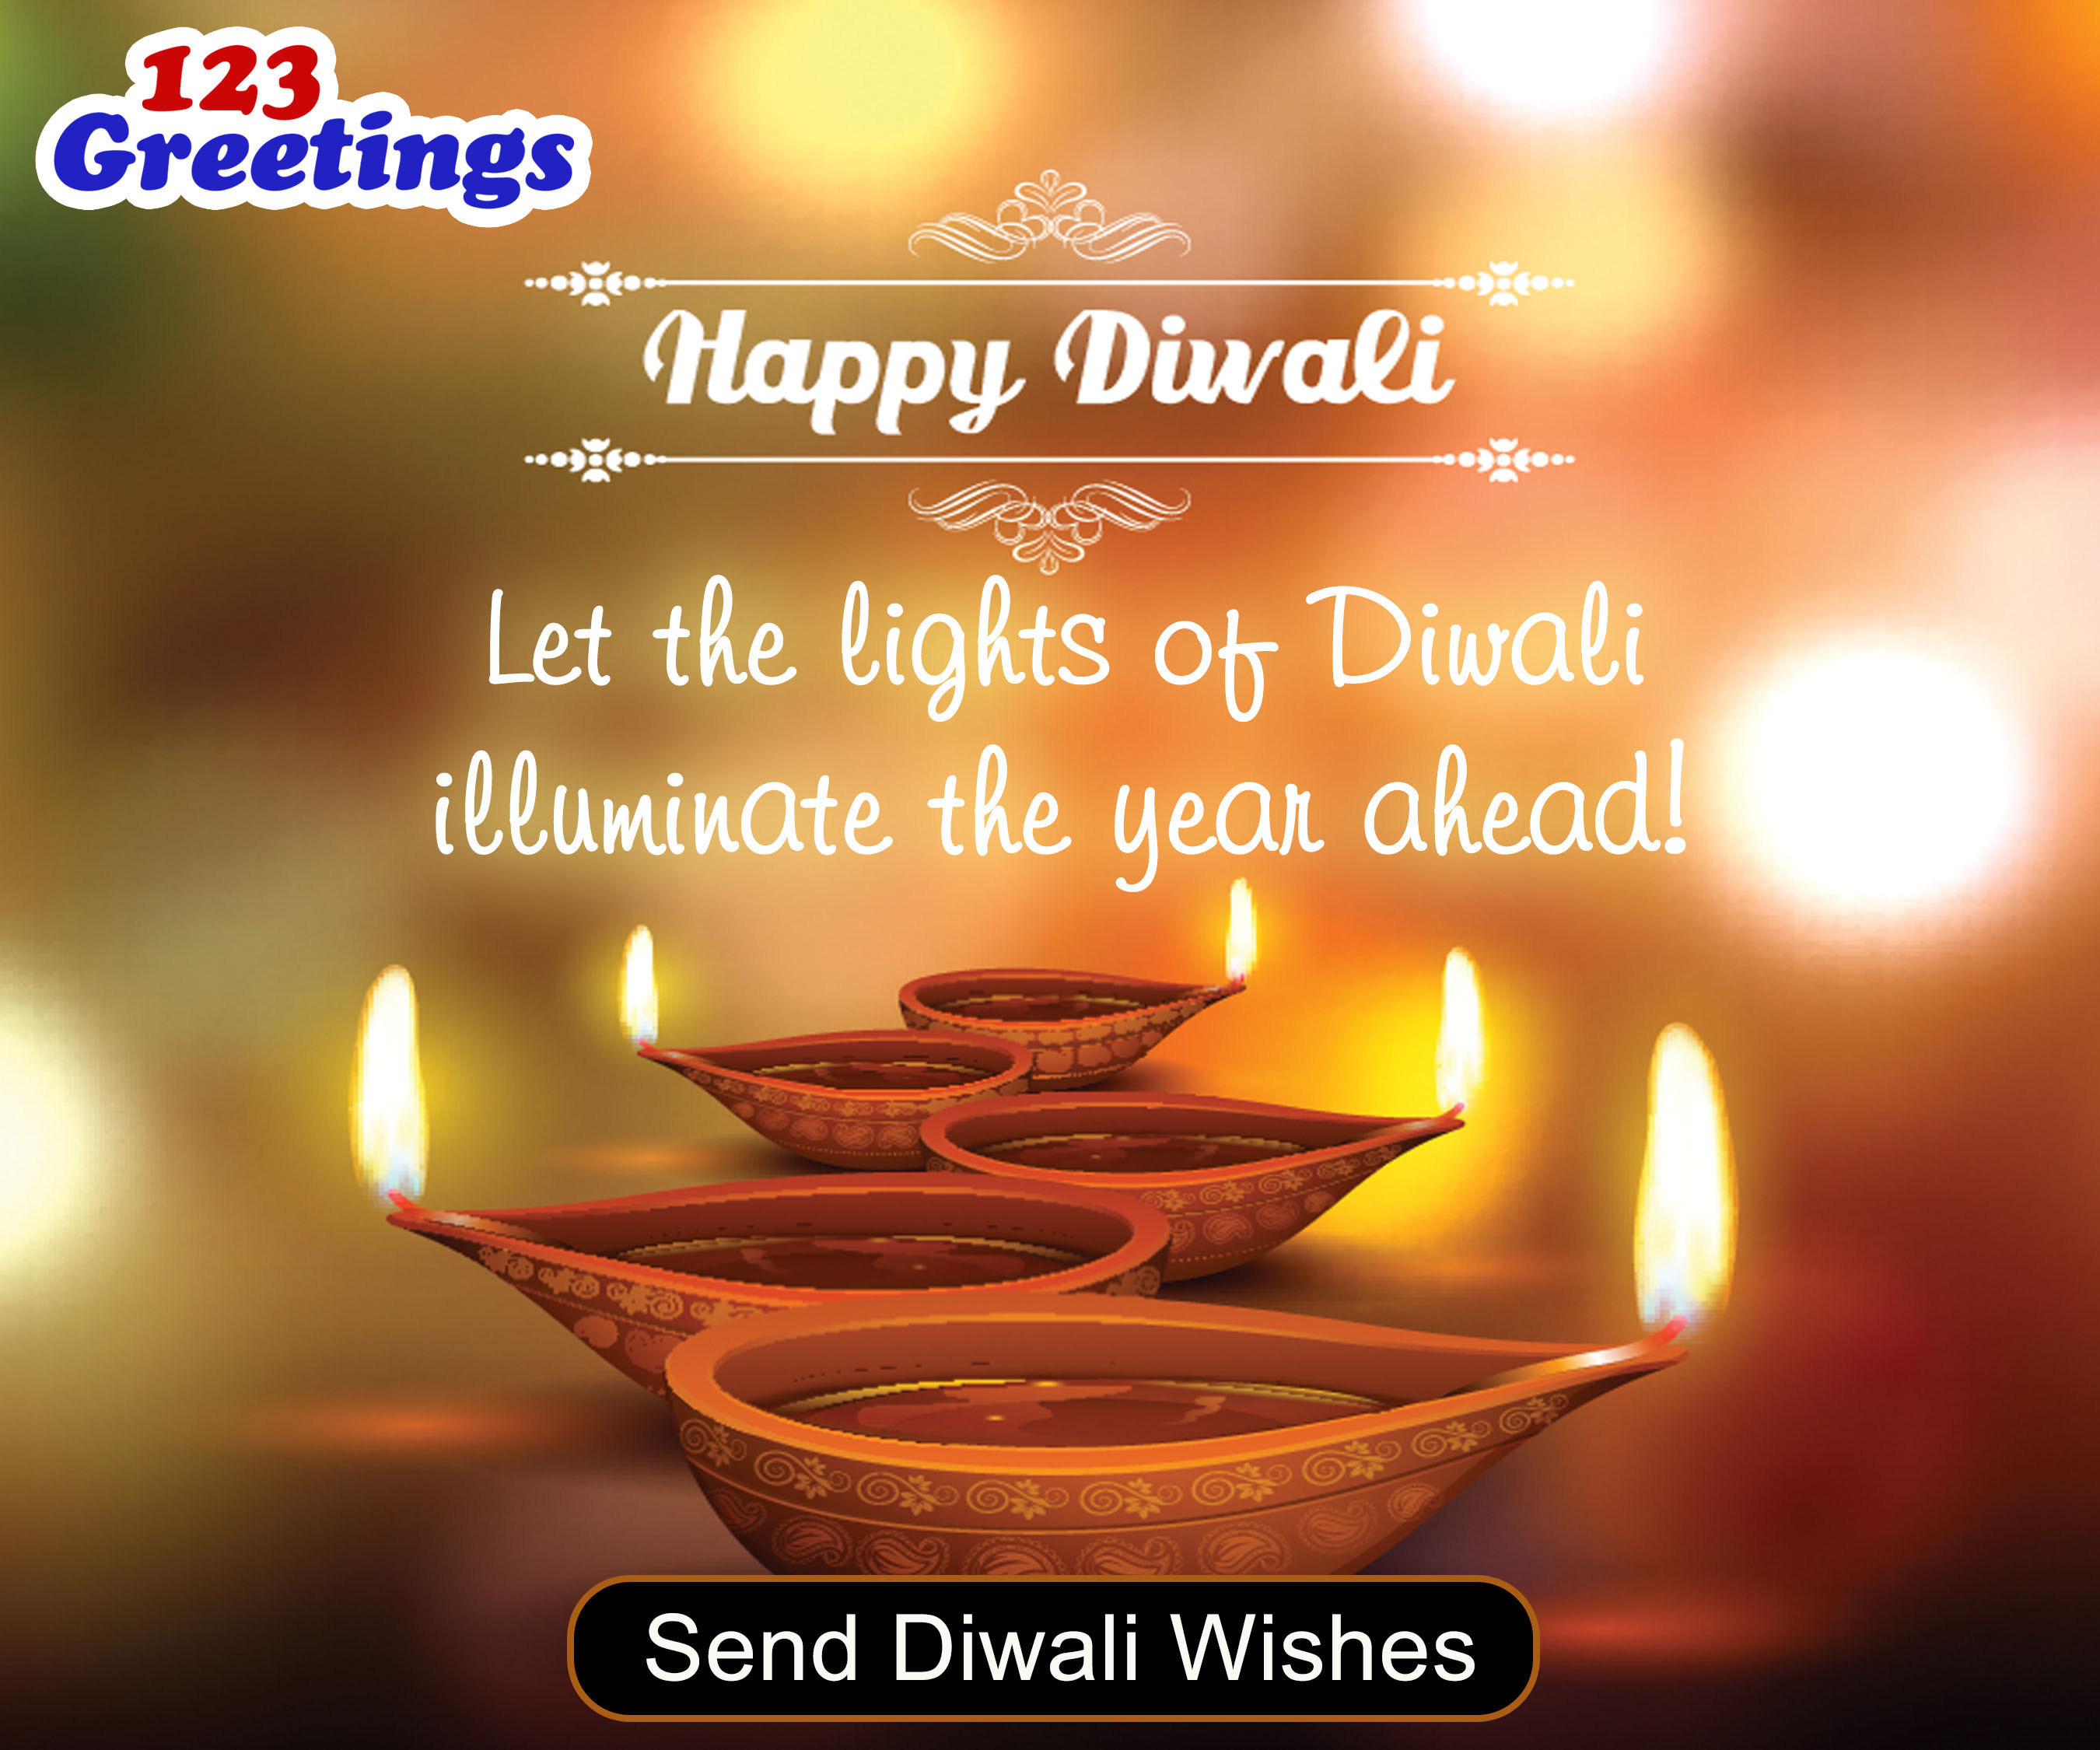 Light Up This Diwali With Ecards From 123greetings And